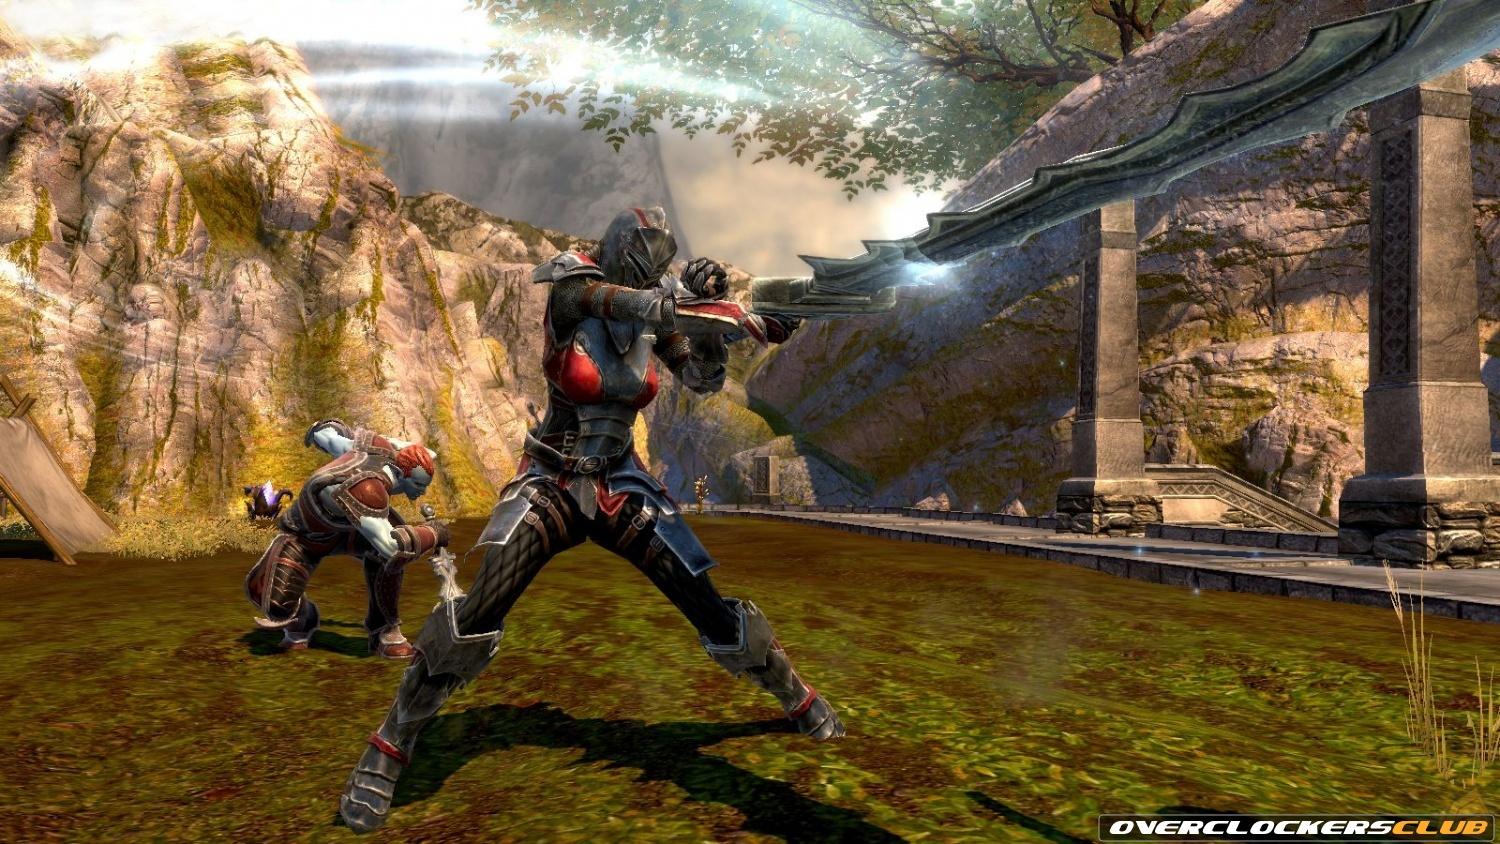 Mass Effect 3 and Kingdoms of Amalur: Reckoning Feature Item Crossover for Playing Demos